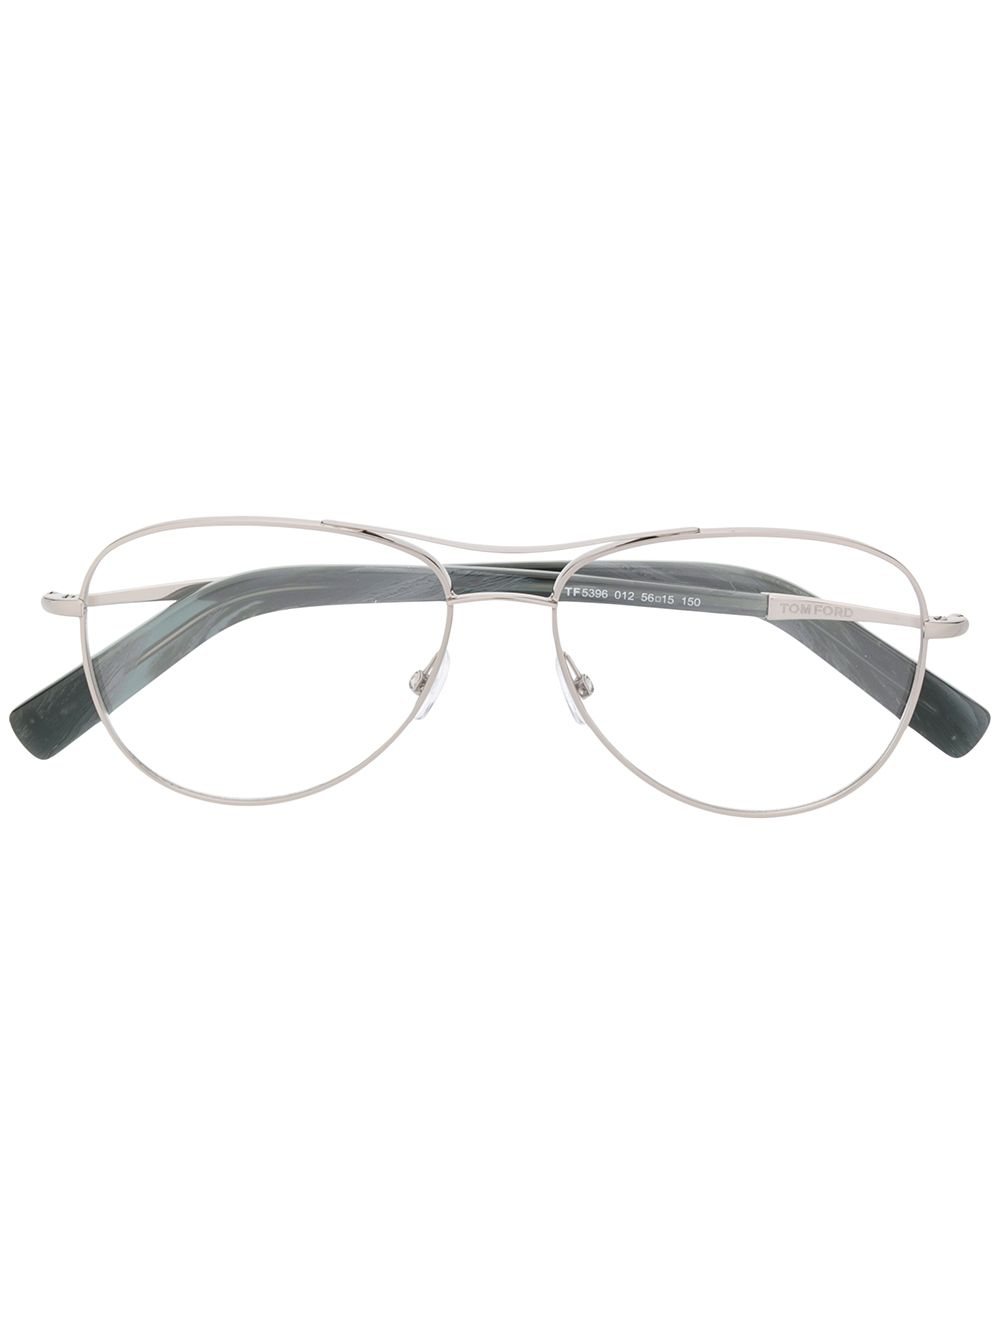 6448622d16 Tom Ford Eyewear Aviator Glasses - Silver